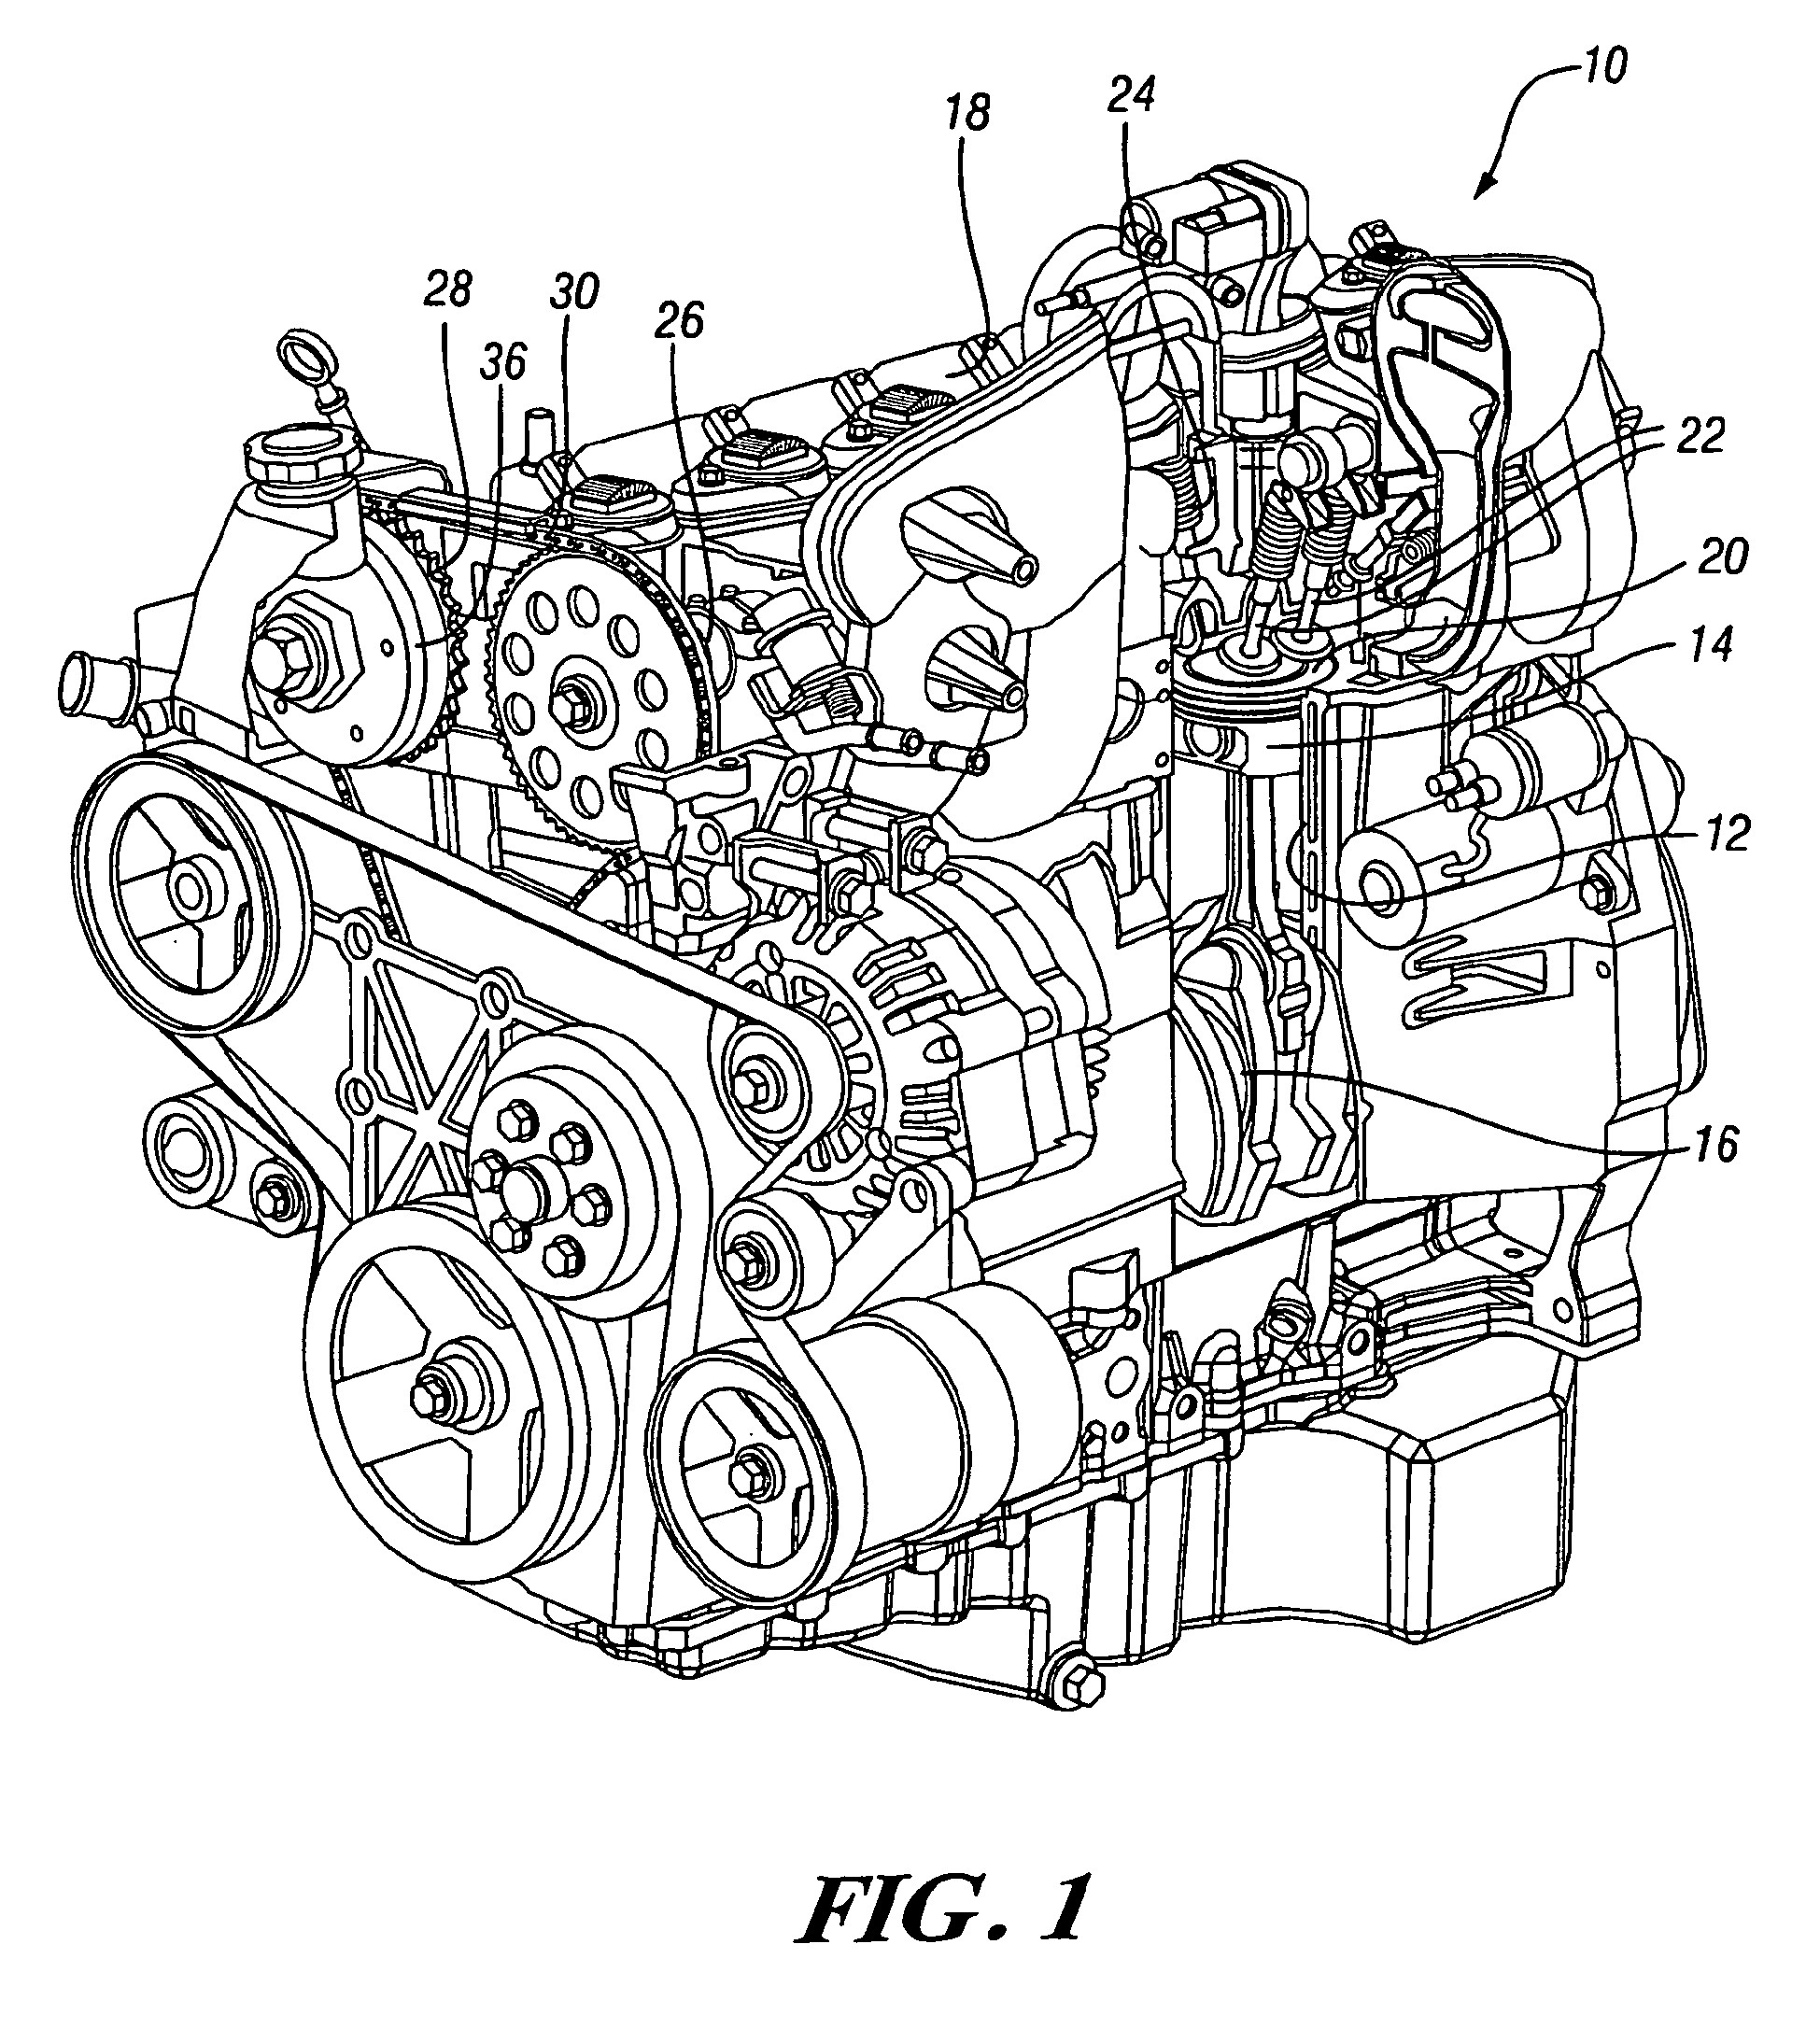 Diesel Engine Diagram Labeled Diesel Engine Drawing at Getdrawings Of Diesel Engine Diagram Labeled